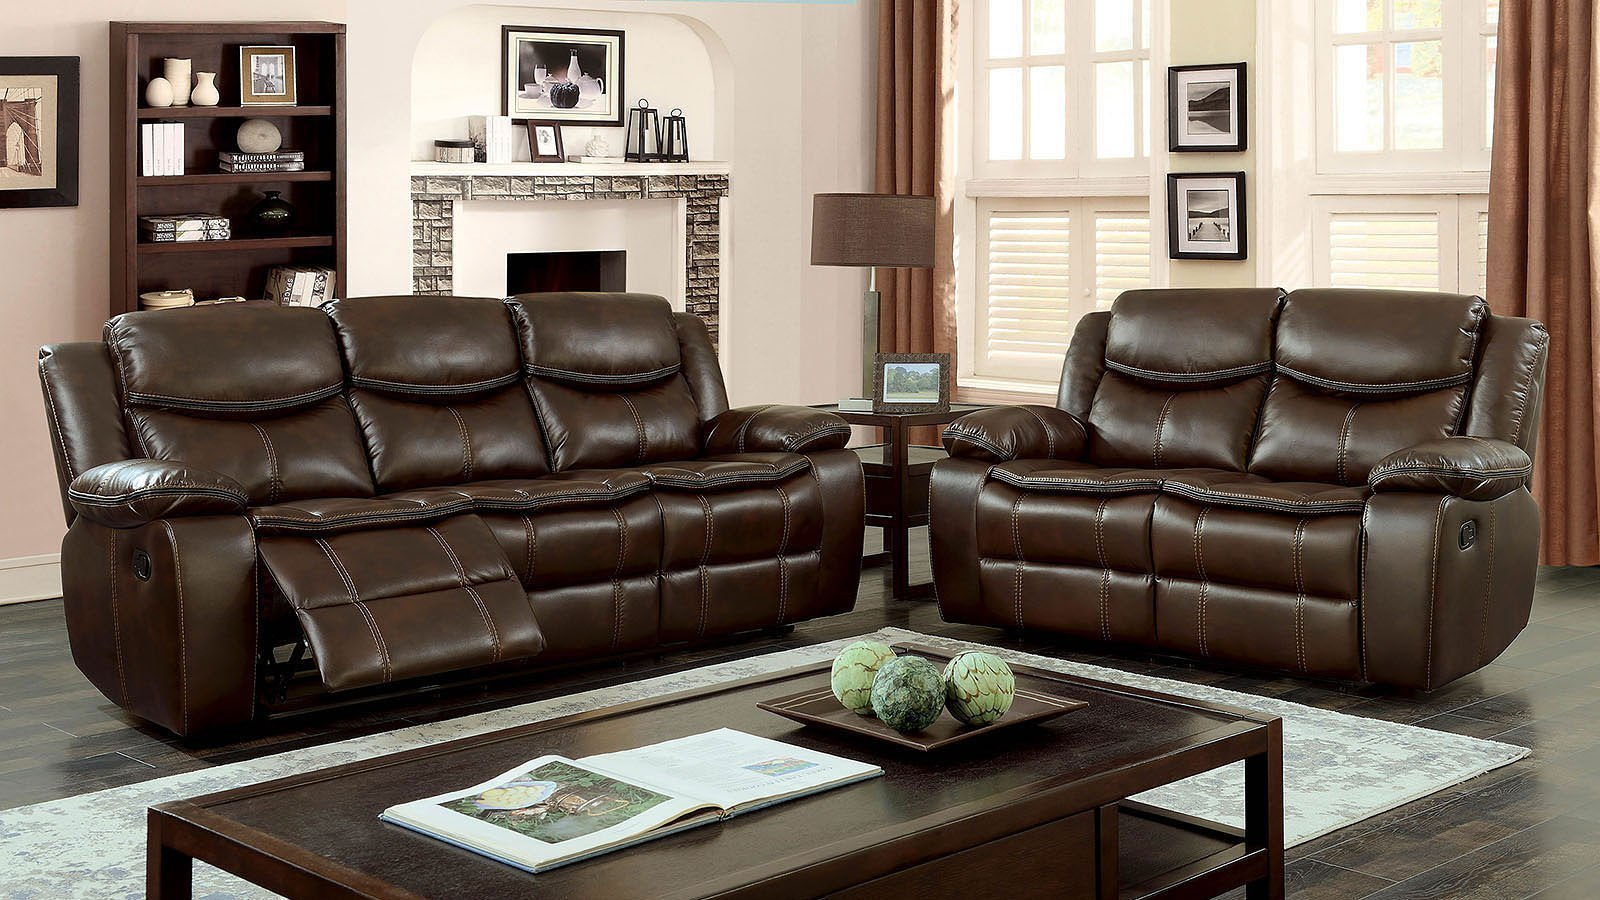 Pollux Reclining Living Room Set (Brown)